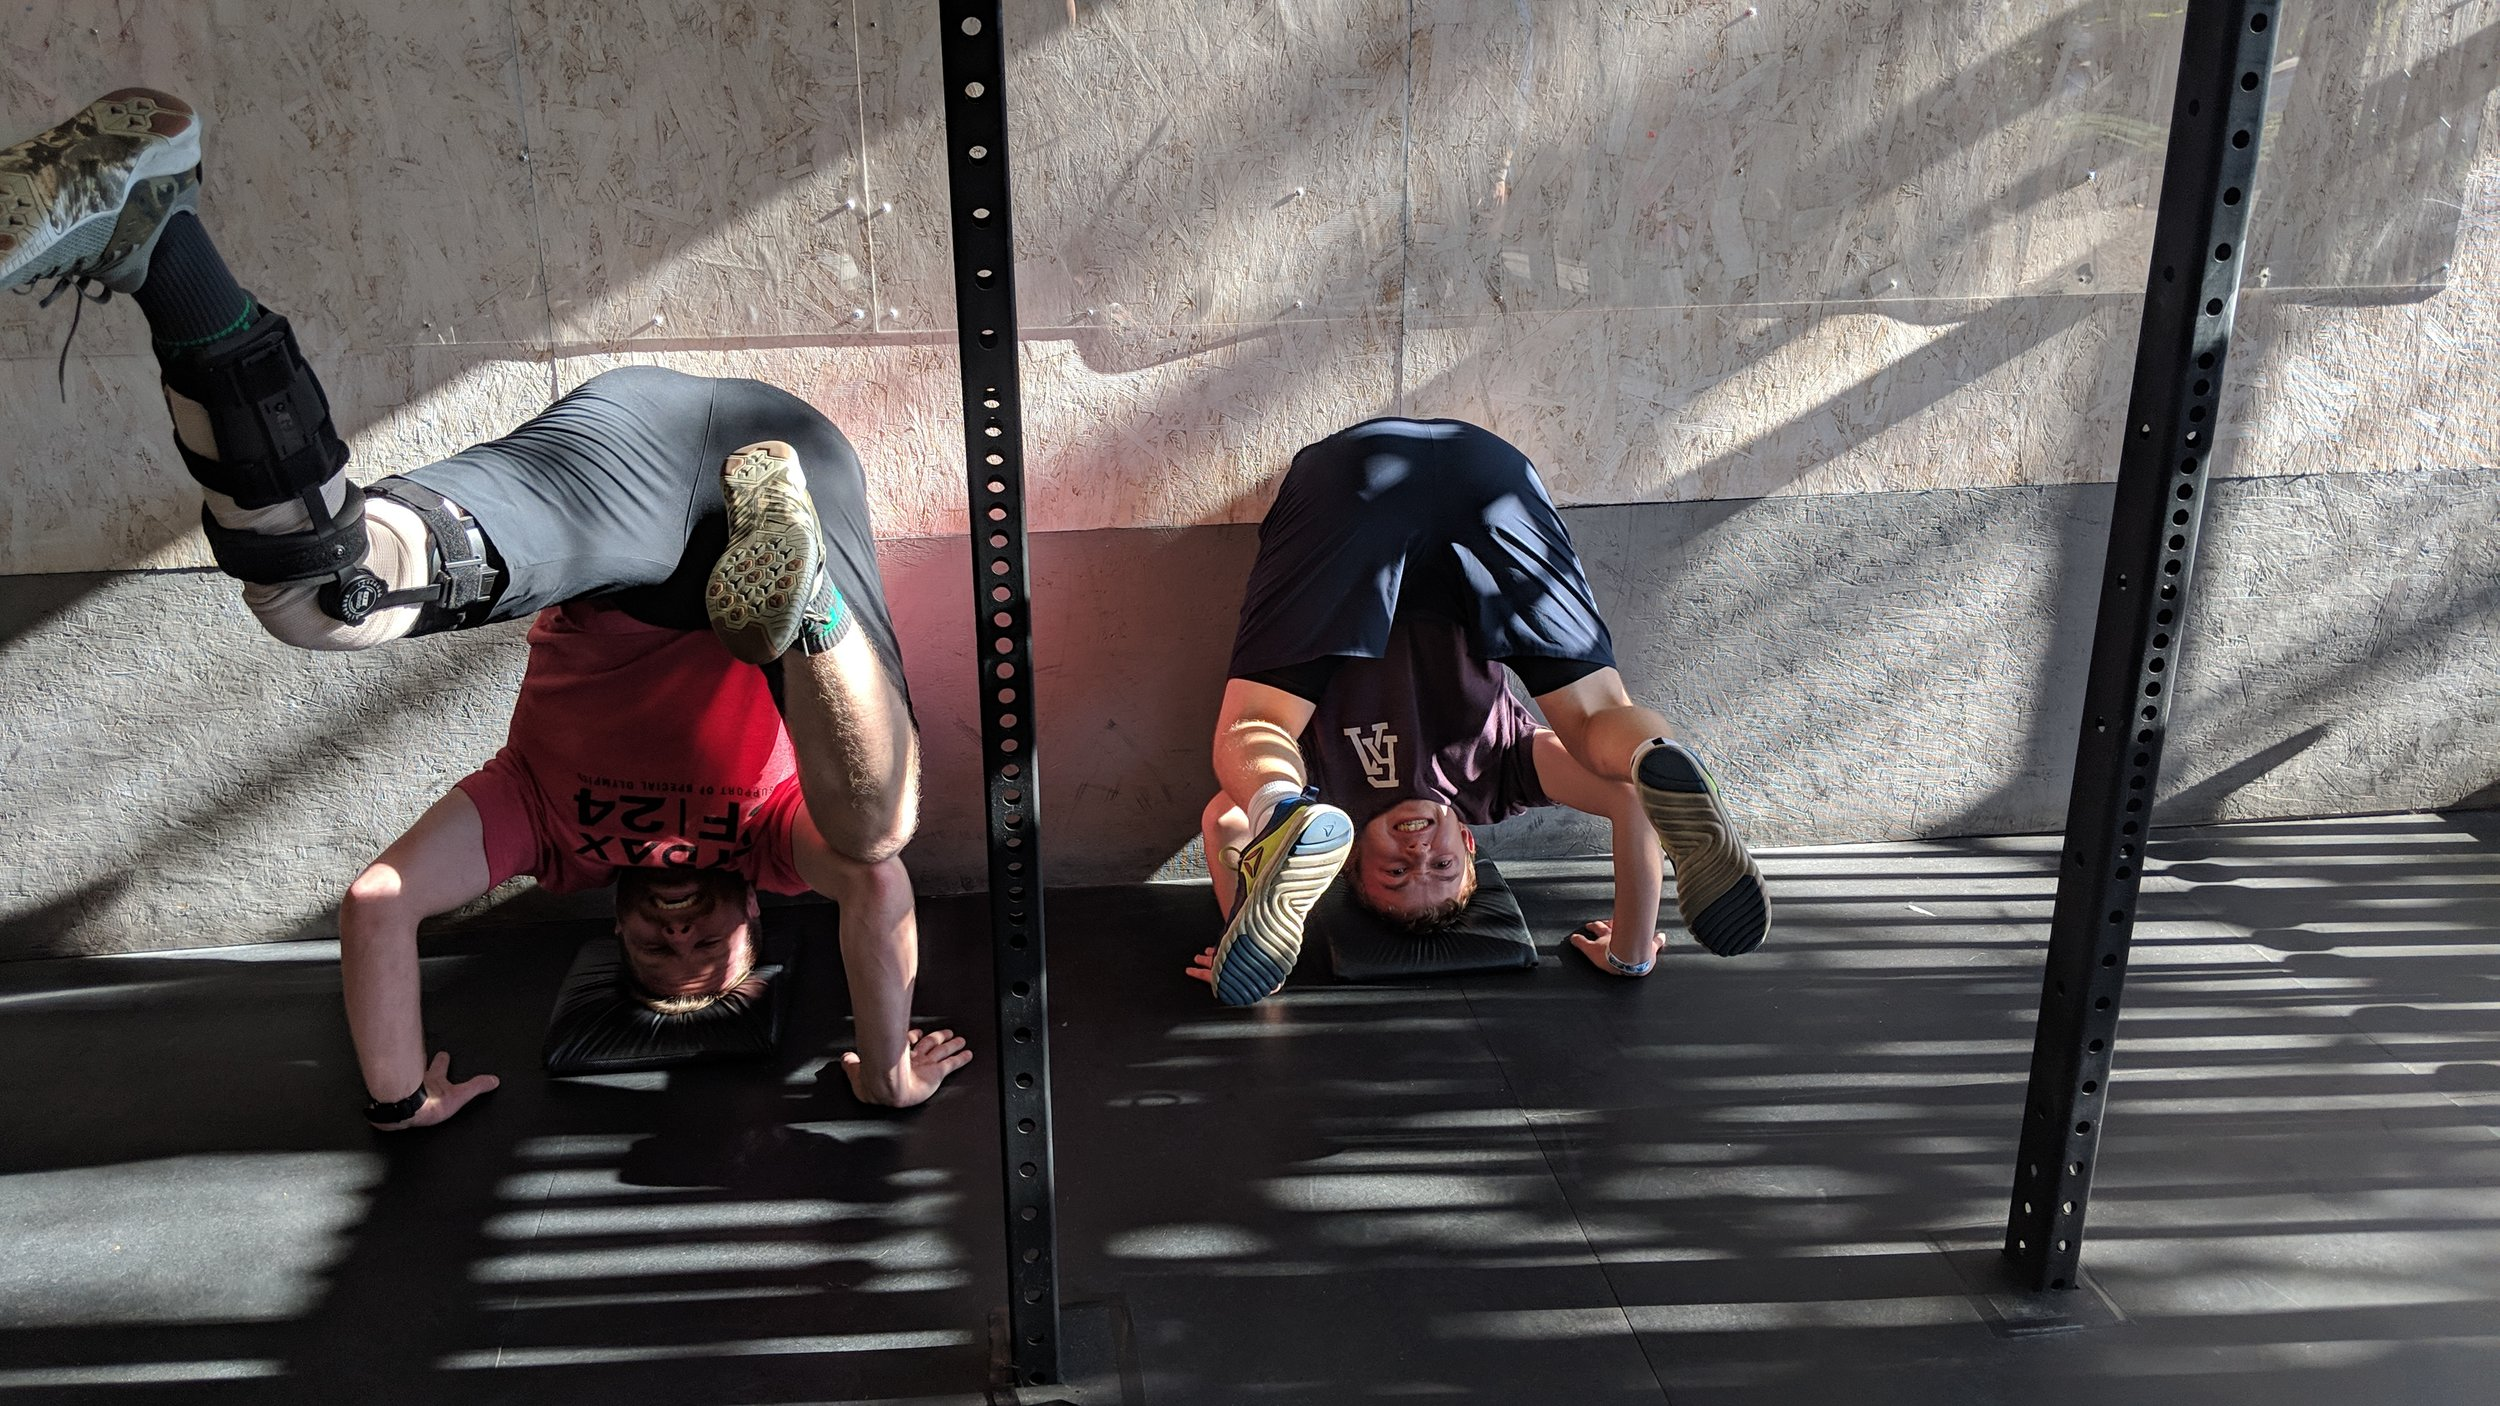 Peter simon headstands fitclub.jpg